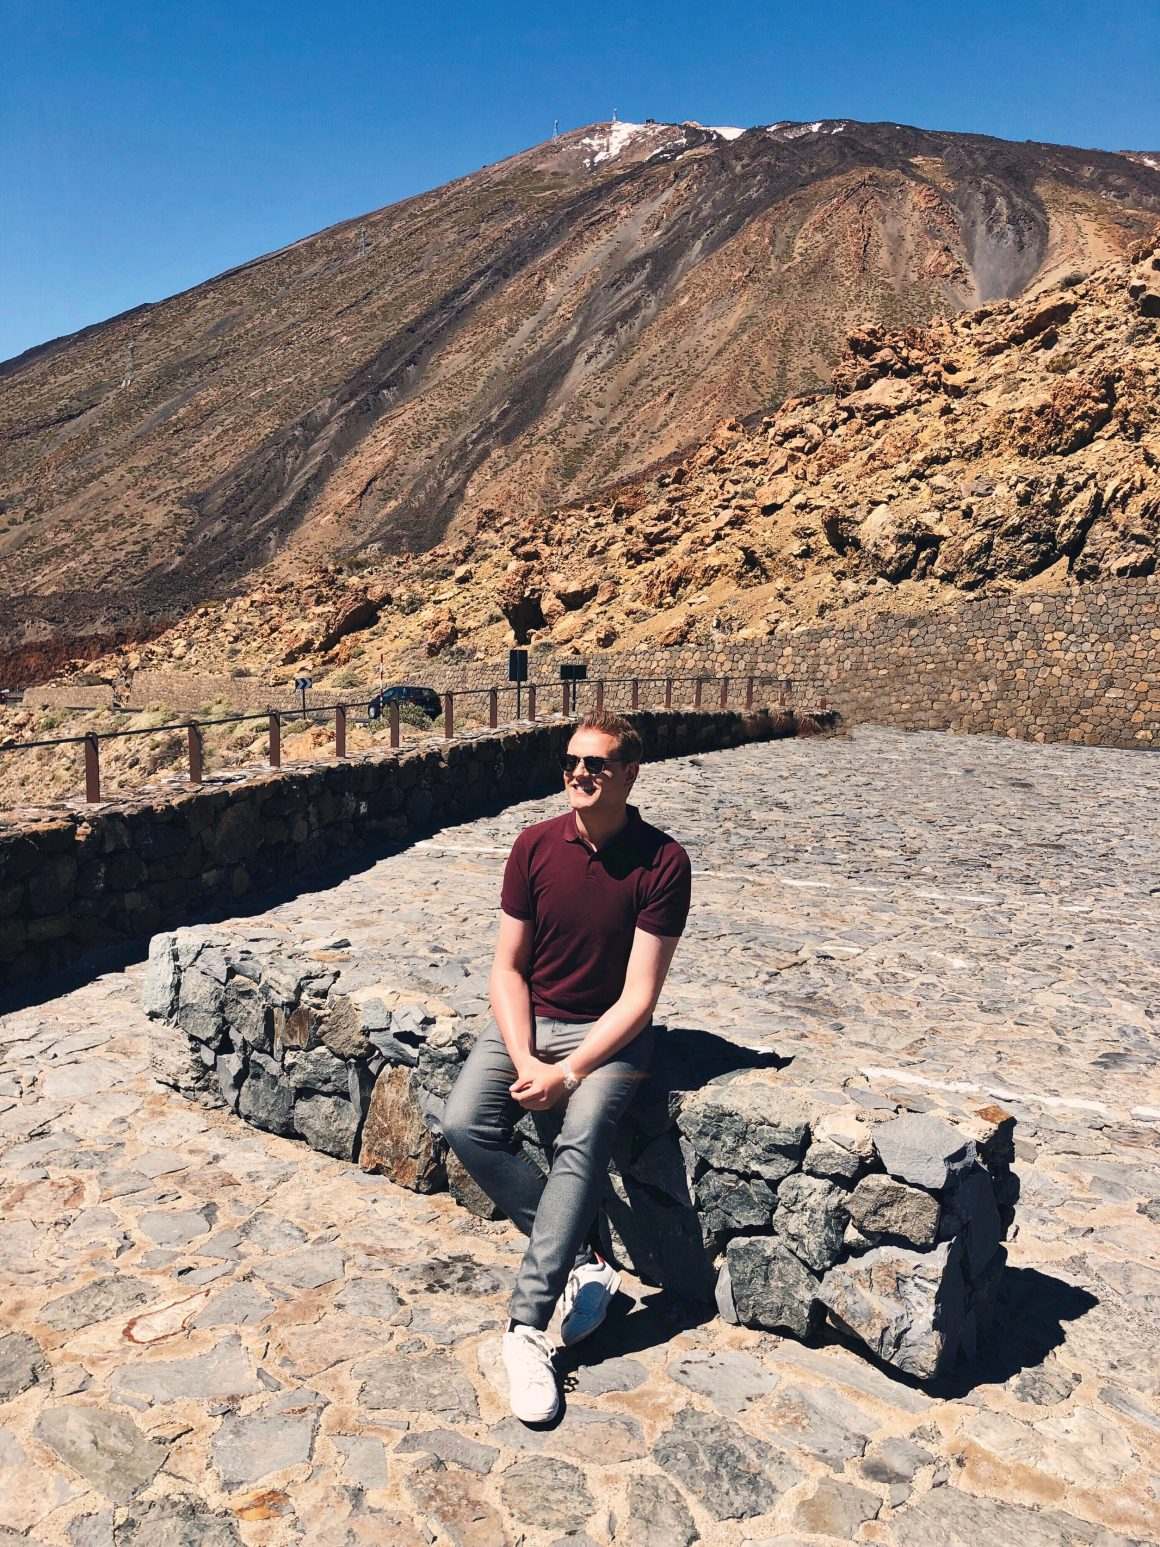 Postcard from Tenerife JustKVN menswear and lifestyleblog